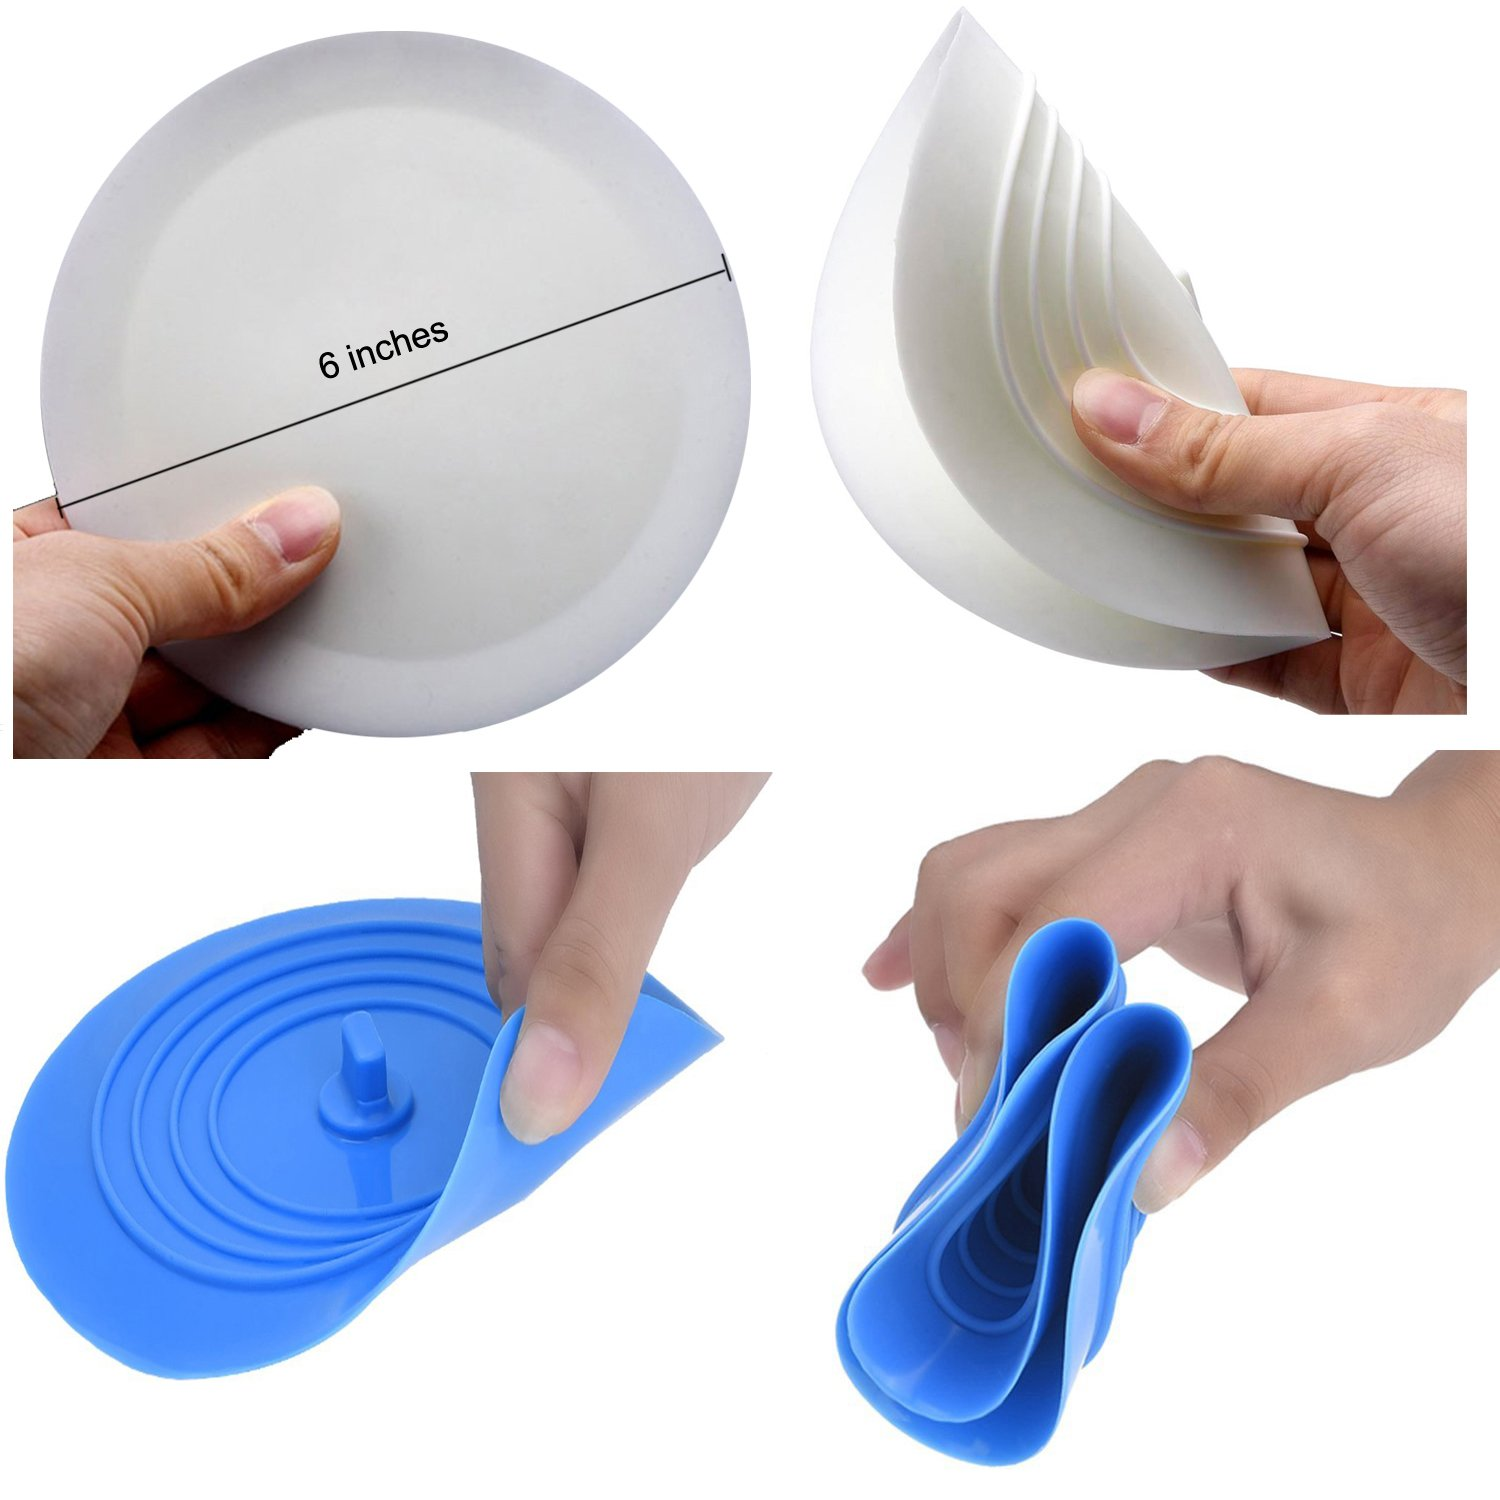 6 inches Large Silicone Bathtub Stopper Drain Plug Sinks Hair Stopper Flat Suction Cover for Kitchen Bathroom and Laundry HAL-062 V-TOP Tub Stopper 3 Pack White/&Gray/&Blue